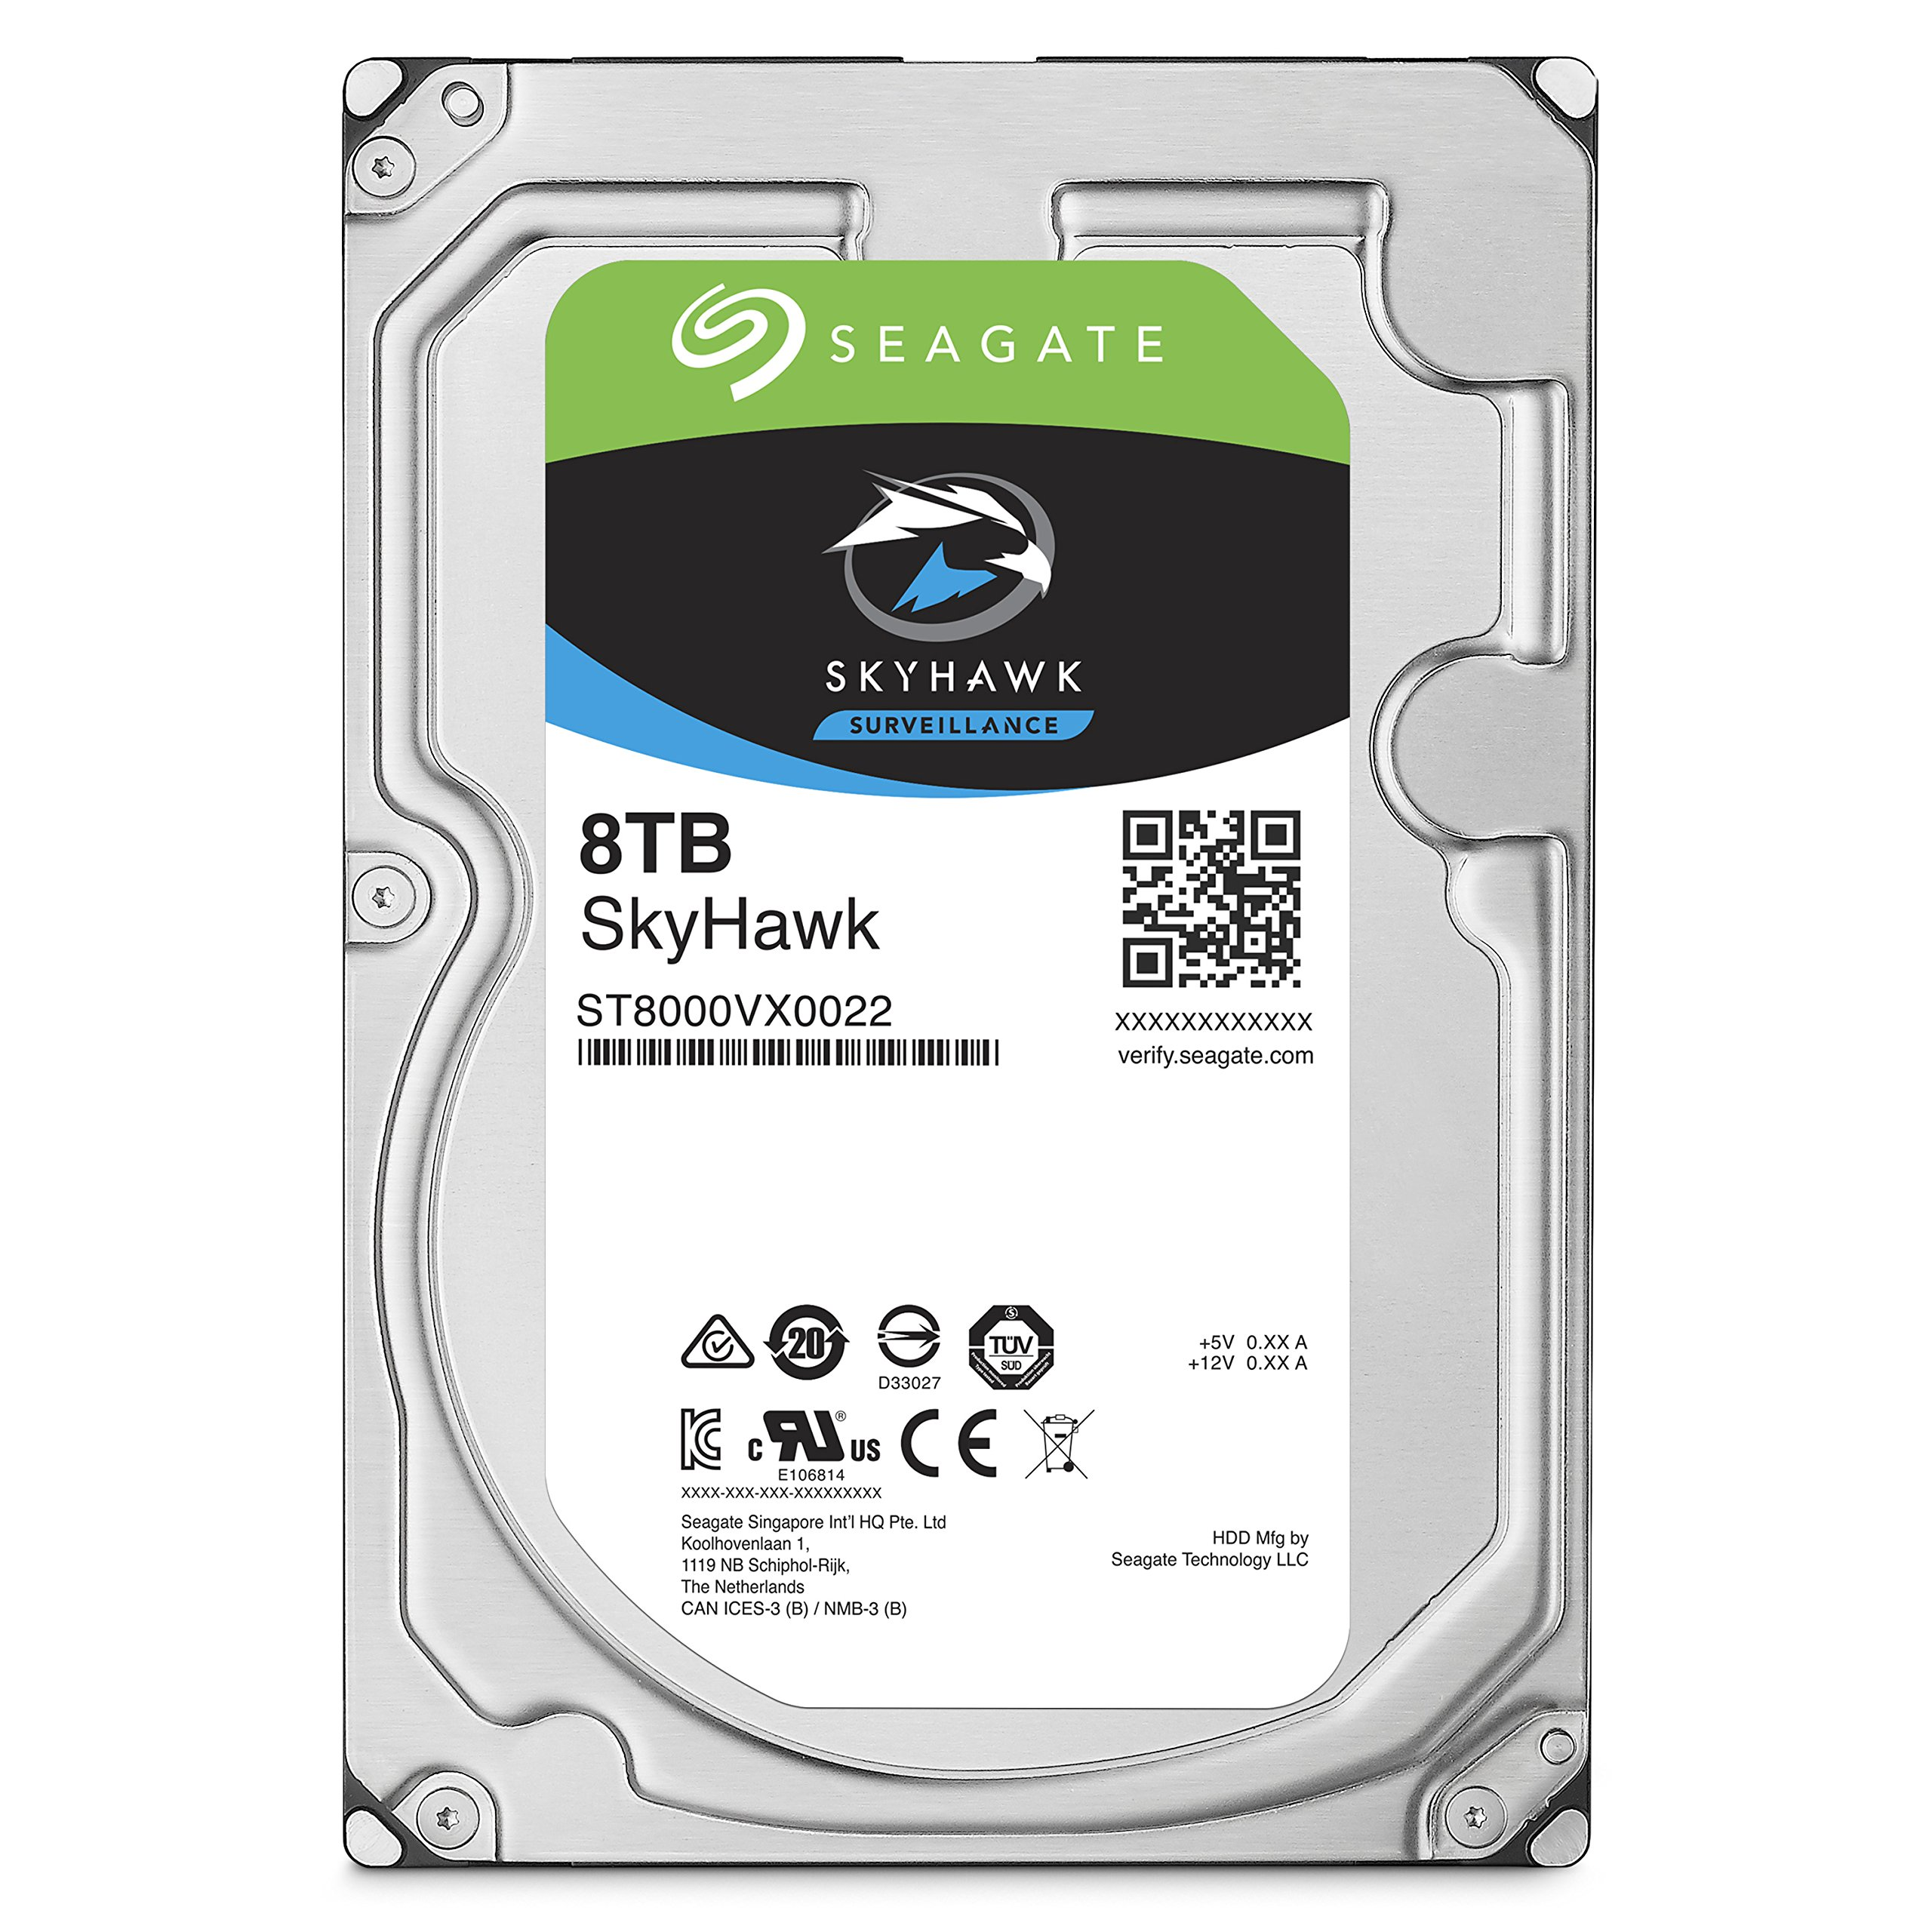 Seagate SkyHawk 8TB Surveillance Internal Hard Drive HDD - 3.5 Inch SATA 6Gb/s 256MB Cache for DVR NVR Security Camera System with Drive Health Management (ST8000VX0022)